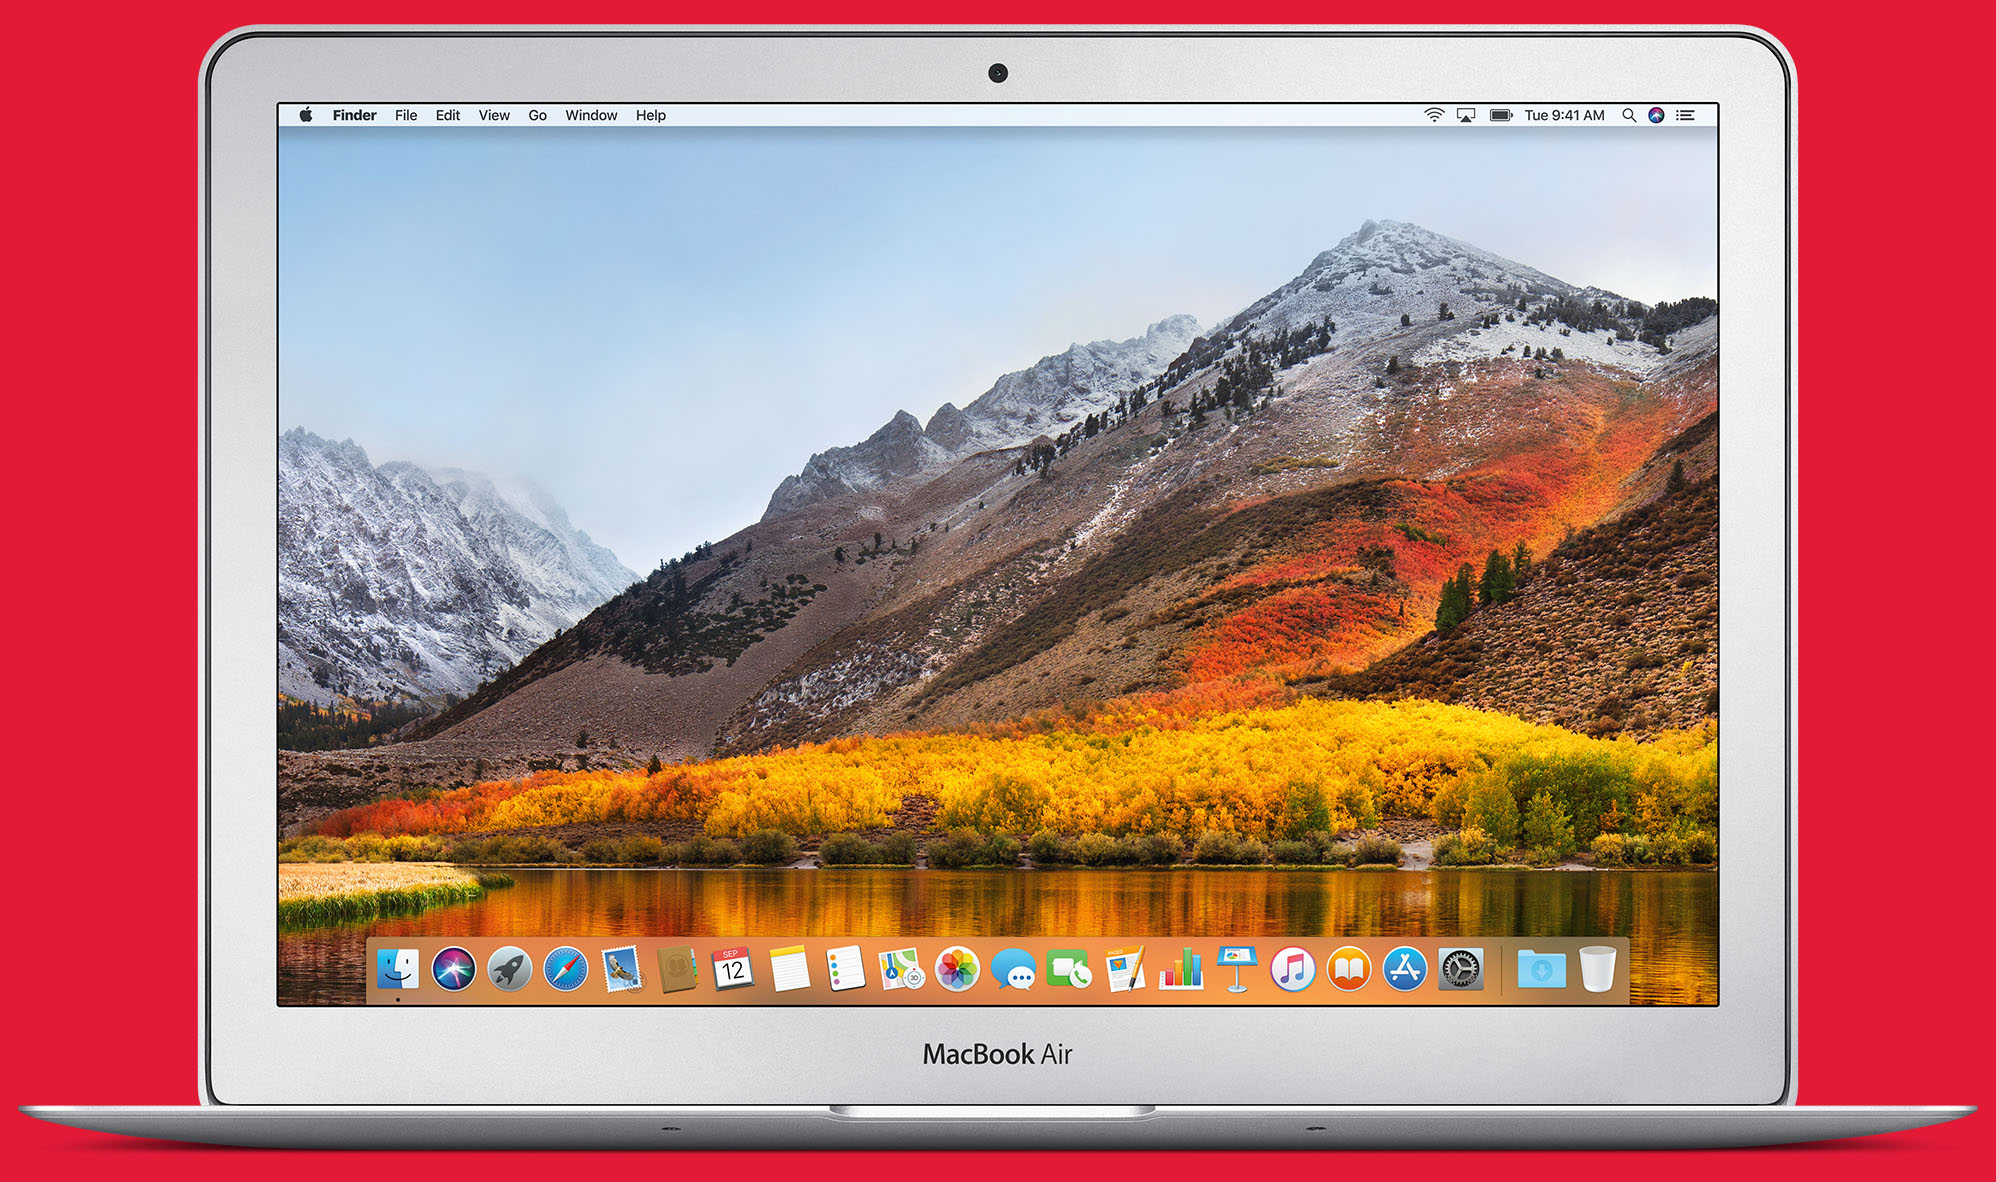 MacBook Air Hero Image